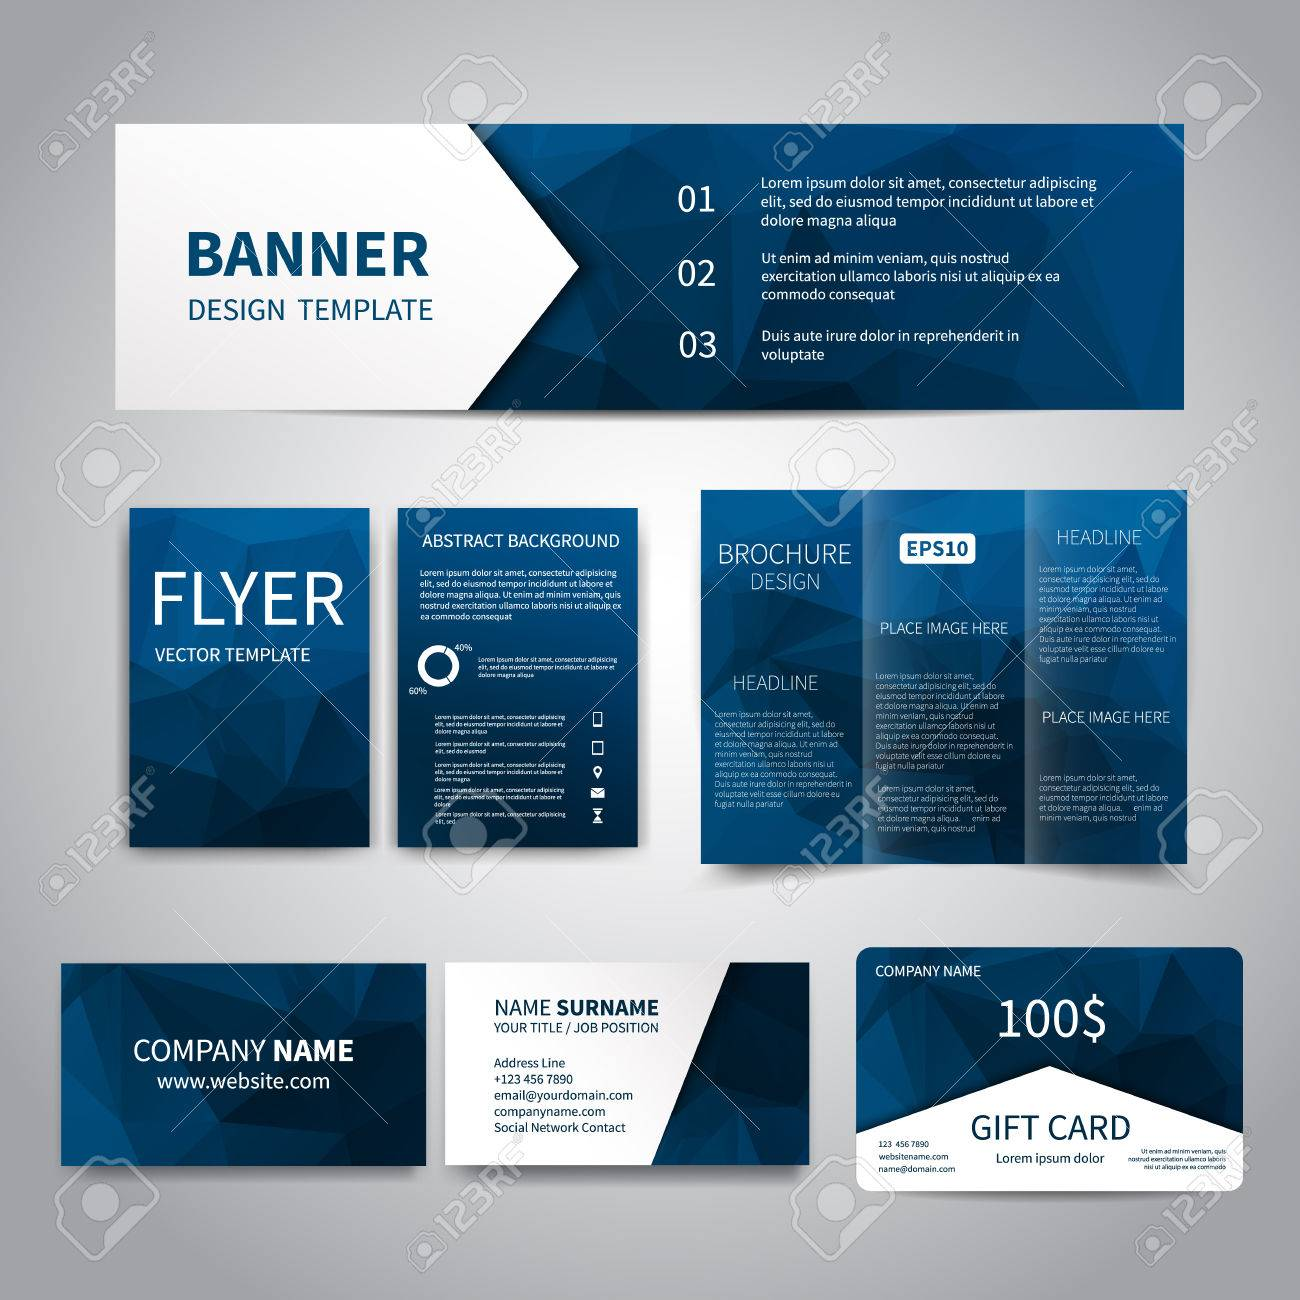 Business advertising cards choice image free business cards banner flyers brochure business cards gift card design banner flyers brochure business cards gift card design magicingreecefo Image collections